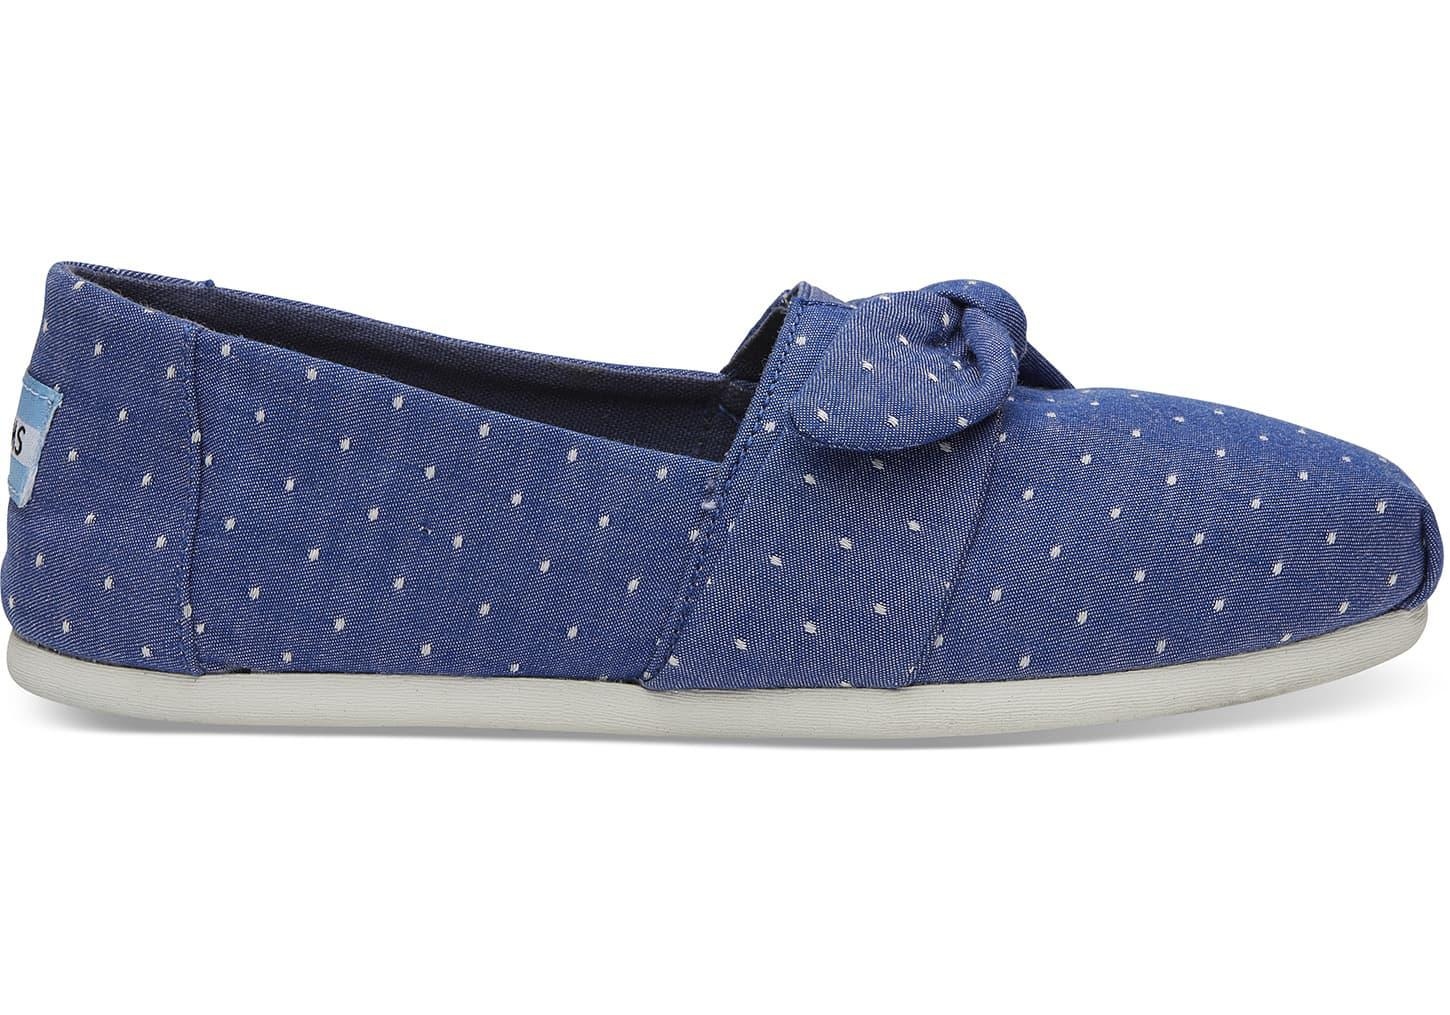 Toms Women'S Classic Chambray Rope Sole Imperial Blue Dot Ankle-High Canvas Slip-on Shoes - 8M UvvLwg8R